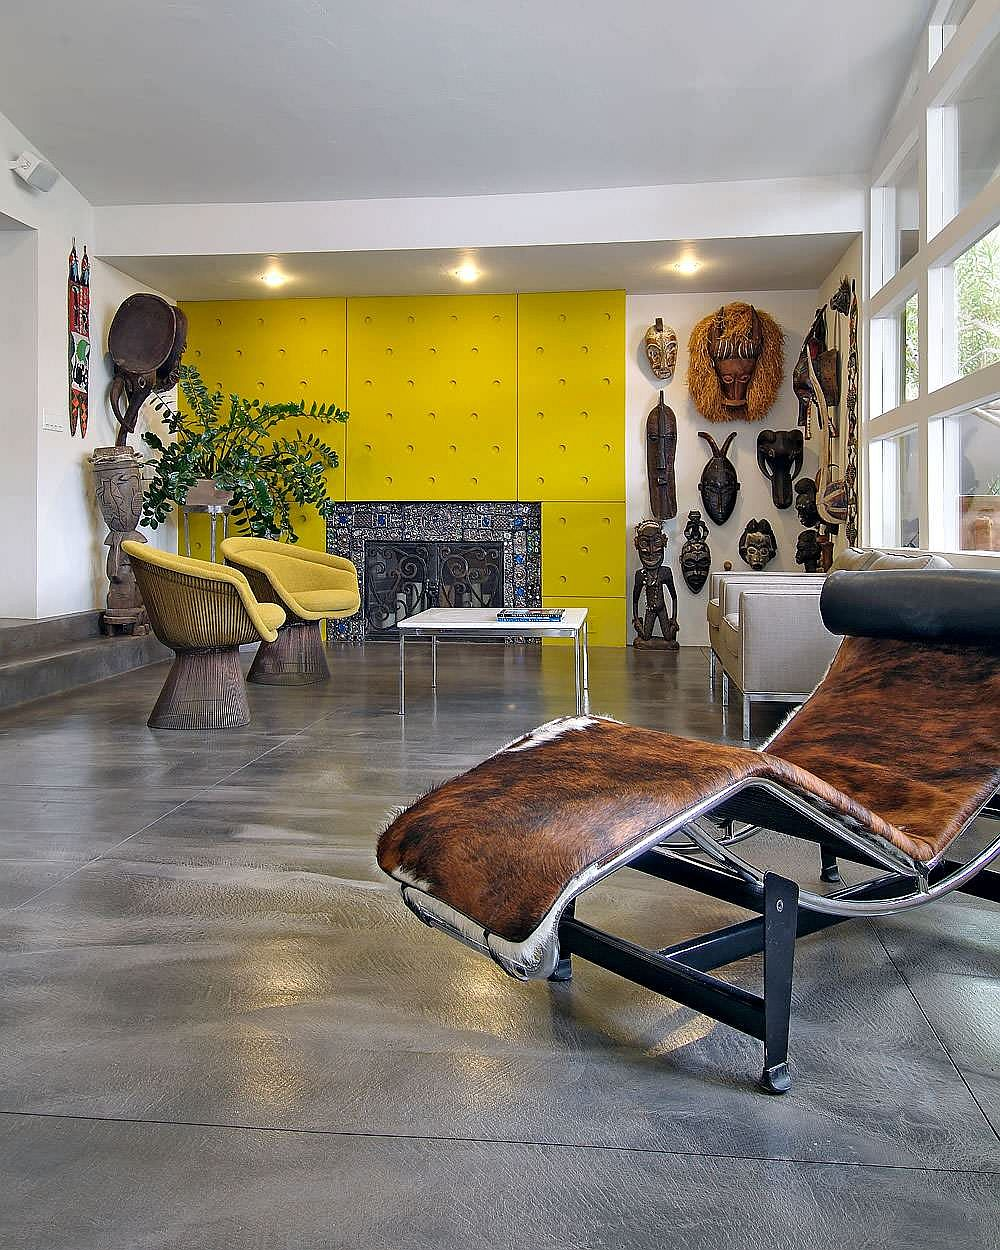 African style interior with the LC4 in cowhide that accentuates the style of the room